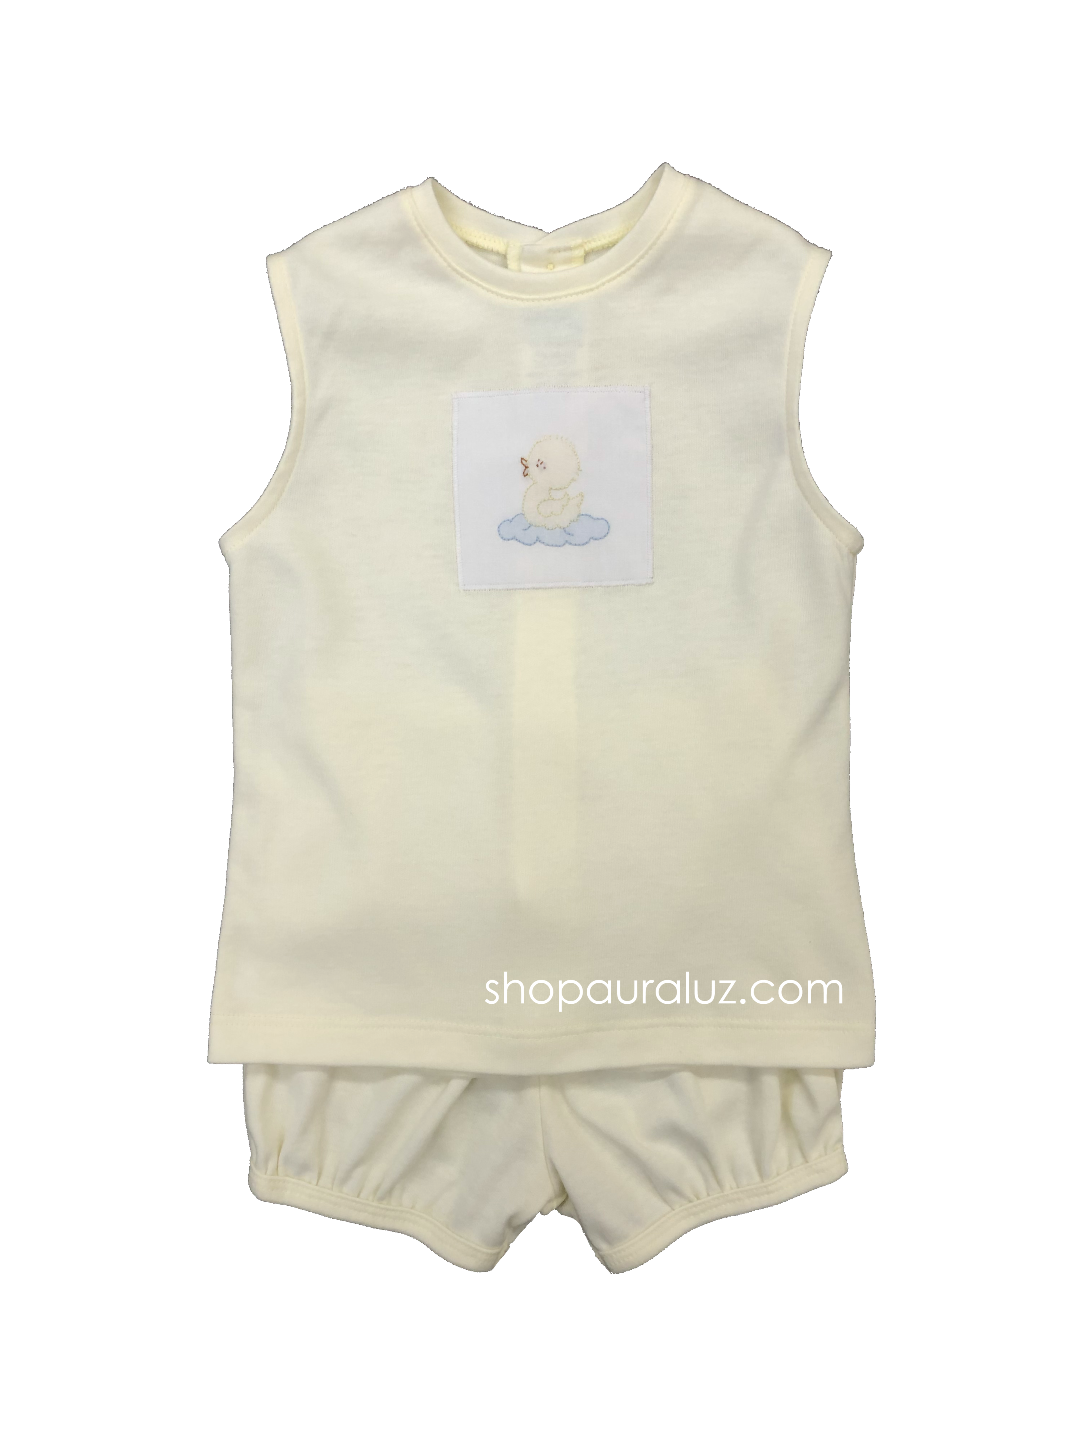 Auraluz Boy 2pc Sleeveless Knit Set..Yellow with embroidered duck